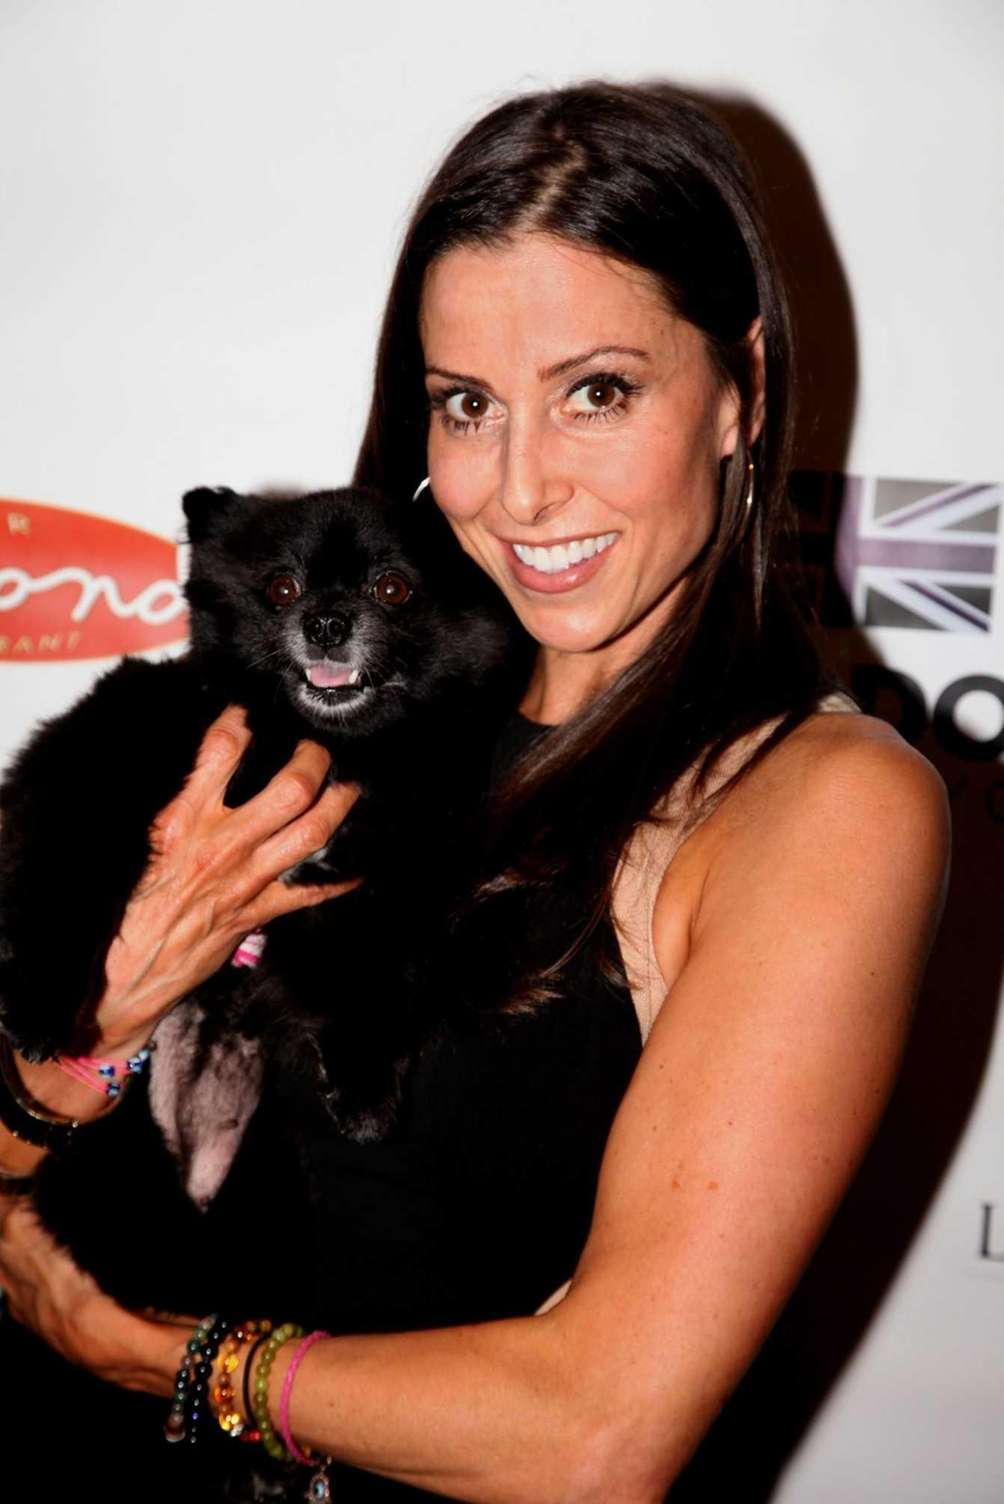 Christine Montanti and her dog, Snowball, attend the